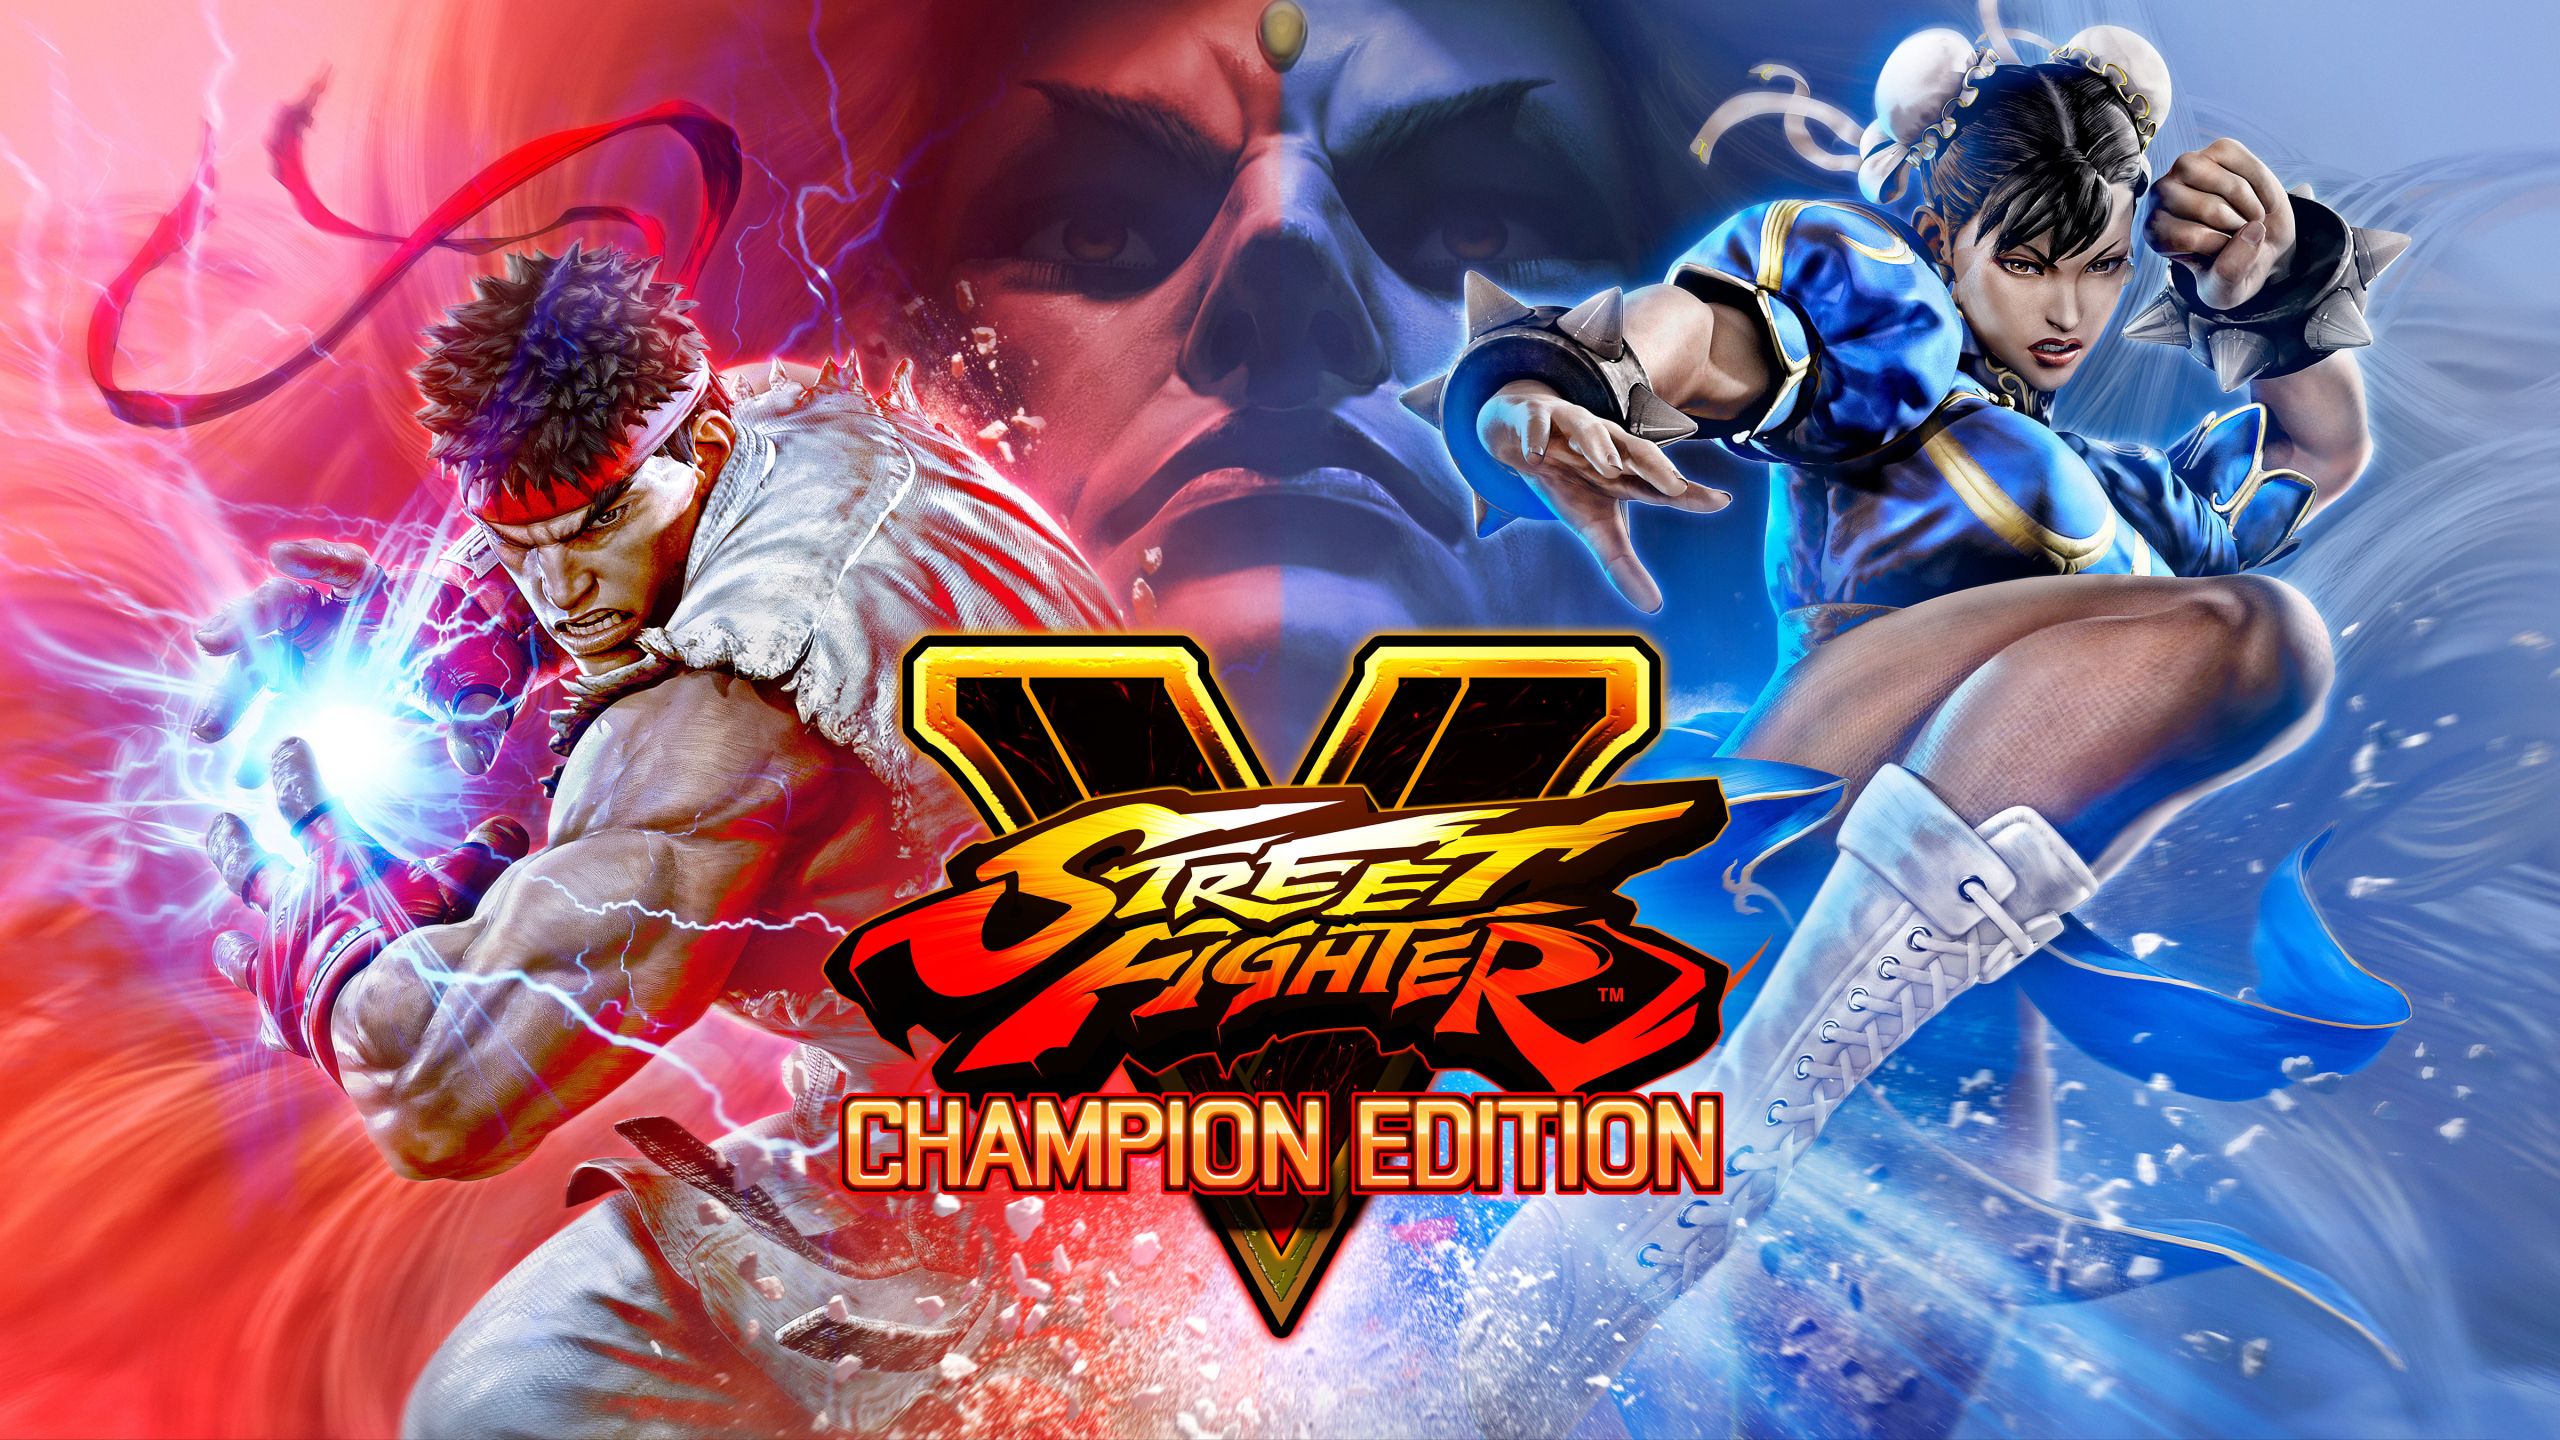 2560x1440 Street Fighter 5 Poster 1440P Resolution ...